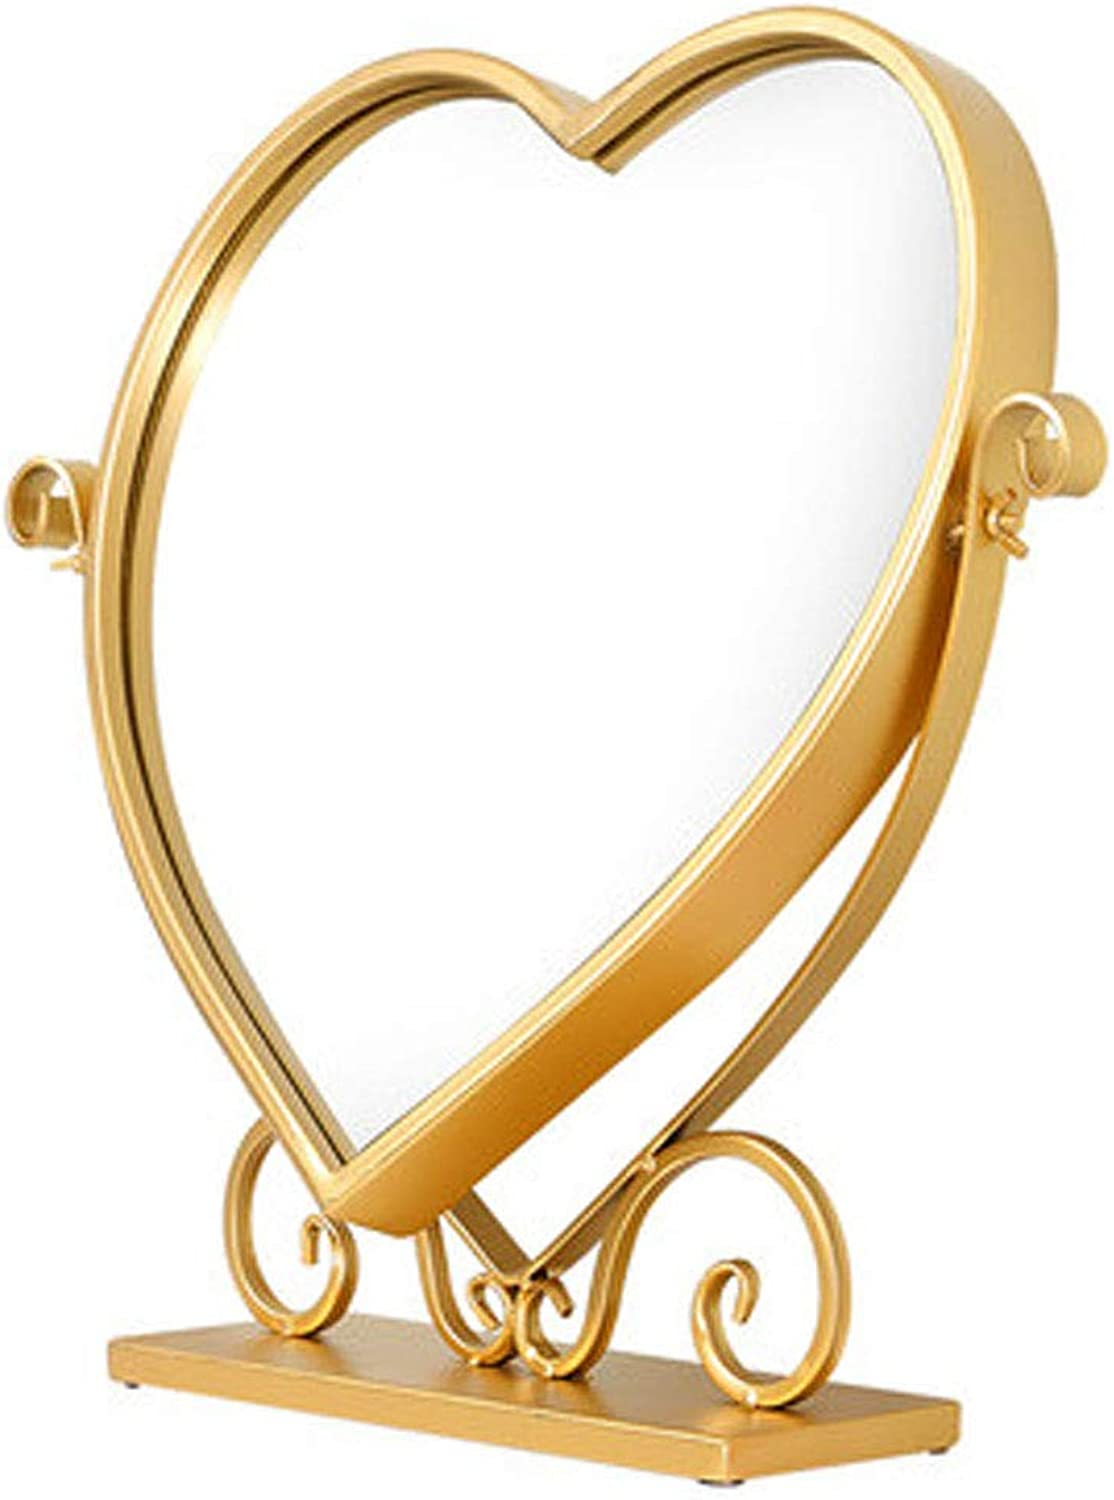 Wall Mount Round Mirror Modern Framed Mirror Wall-Mounted Heart-Shaped Wash Mirror Hanging Mirror for Wall, Vanity Mirror